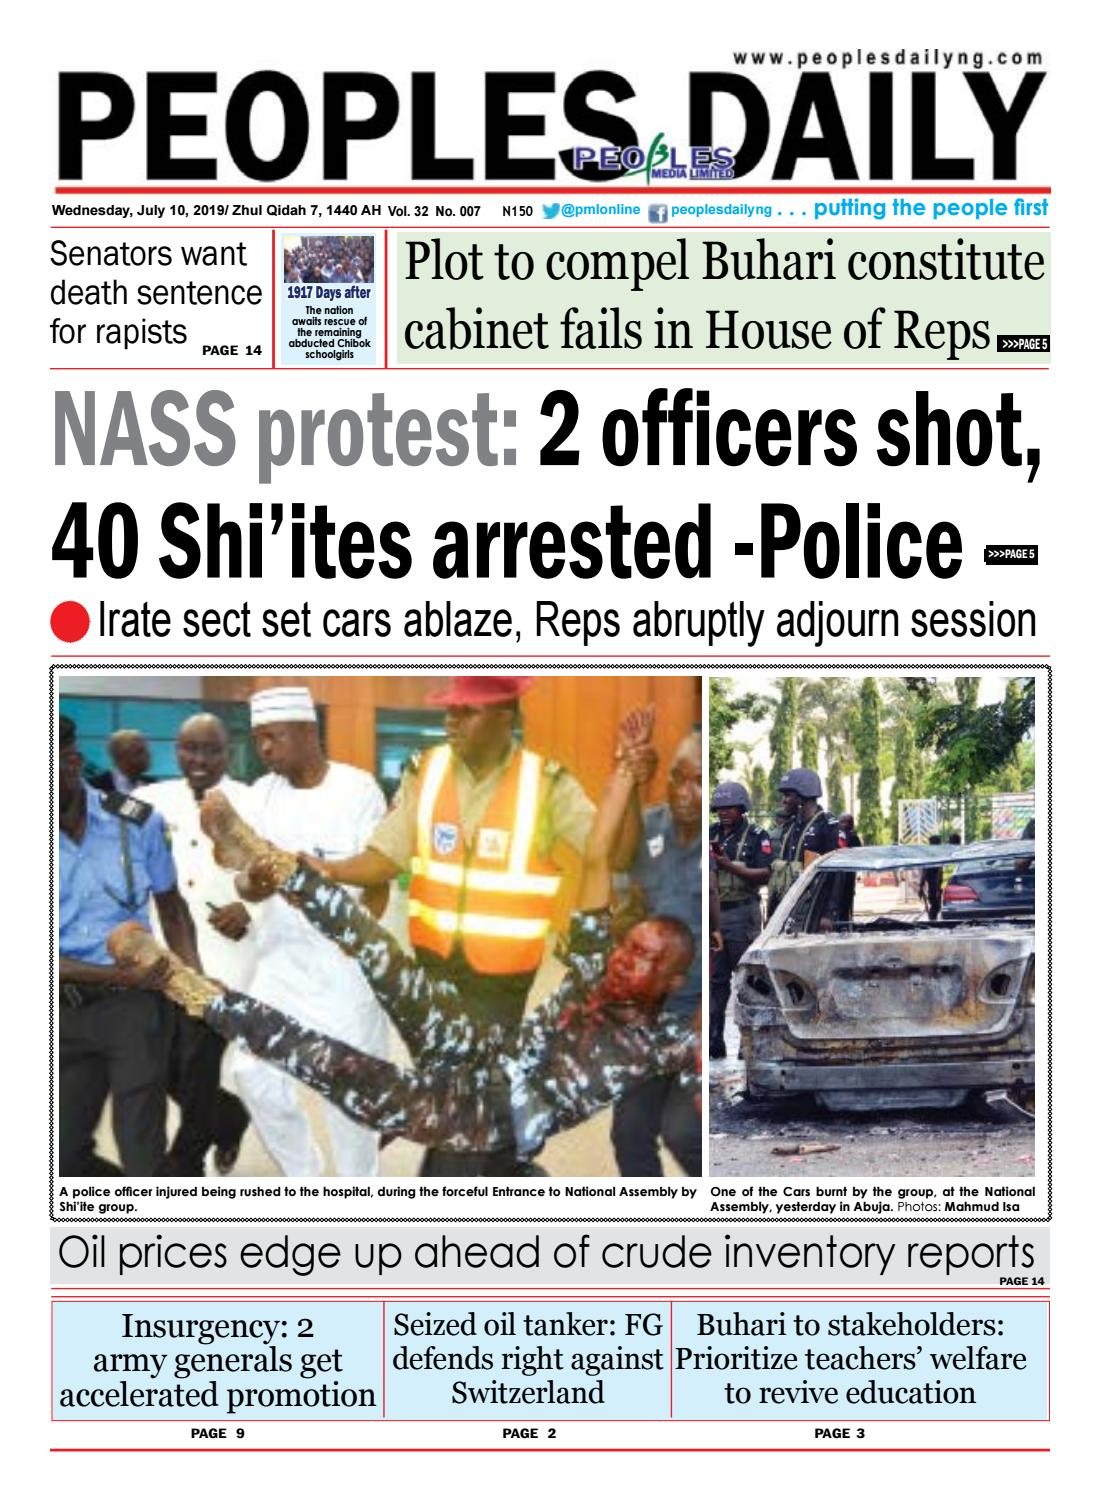 Wednesday, July 10, 2019 Edition by Peoples Media Limited